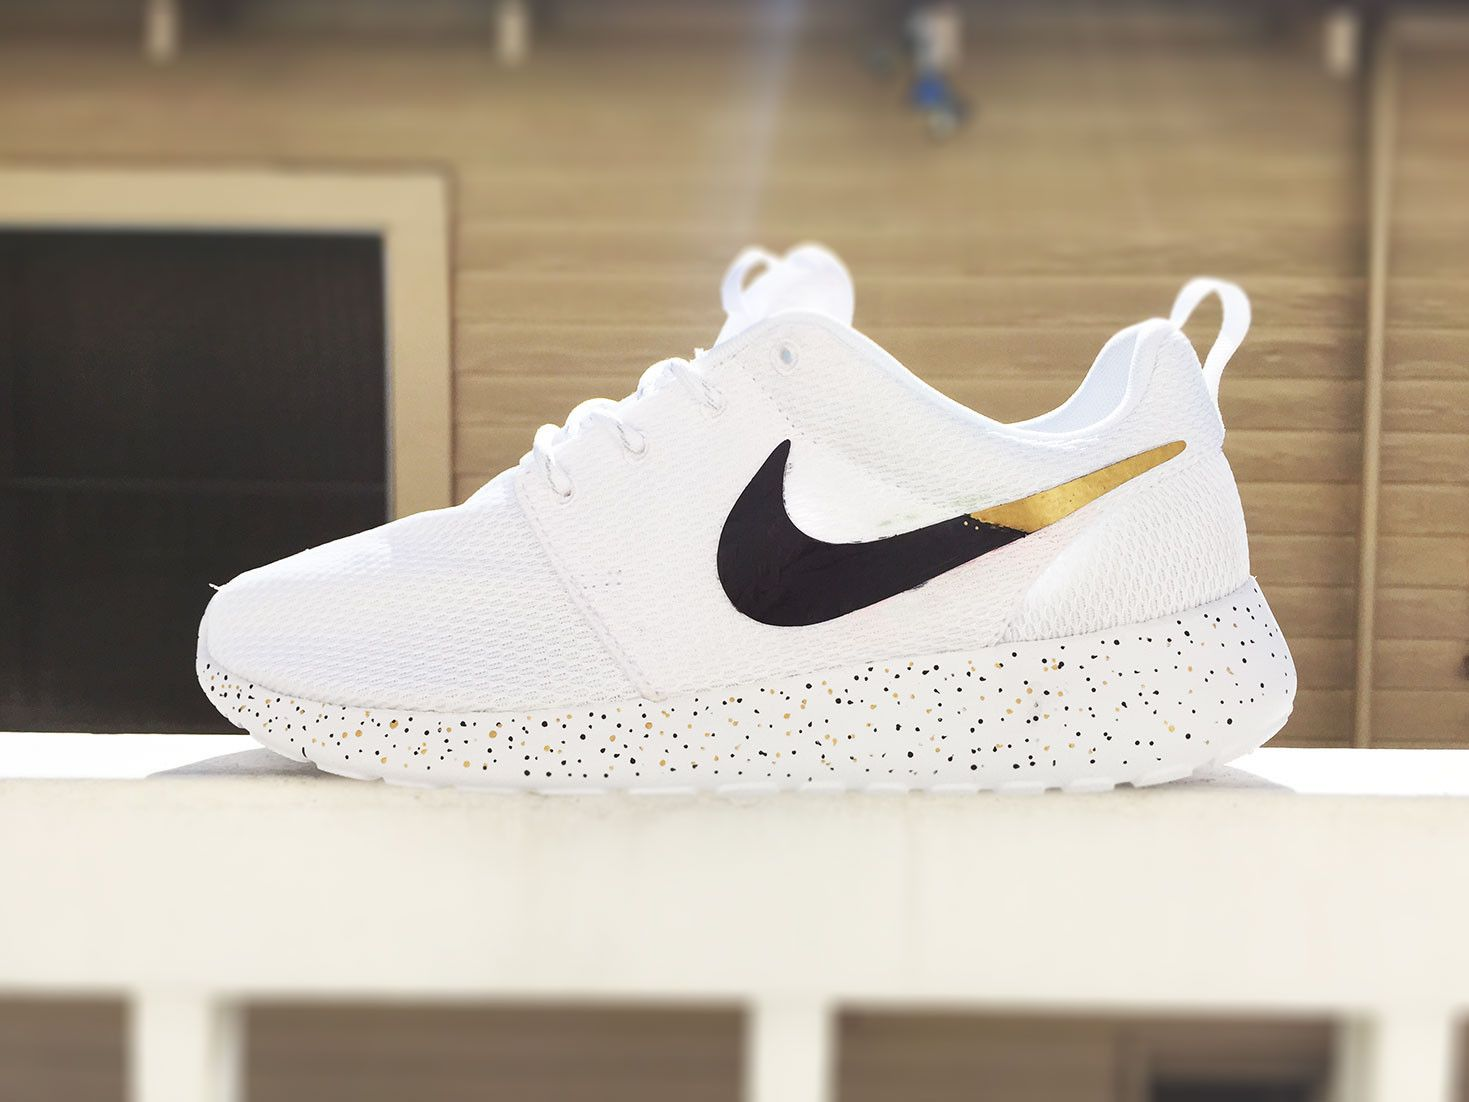 size 40 b59bd 1335c Custom Nike Roshe Run sneakers for women, All white, Black and Gold, Silver,  specles, gold flakes, love, fashionable design